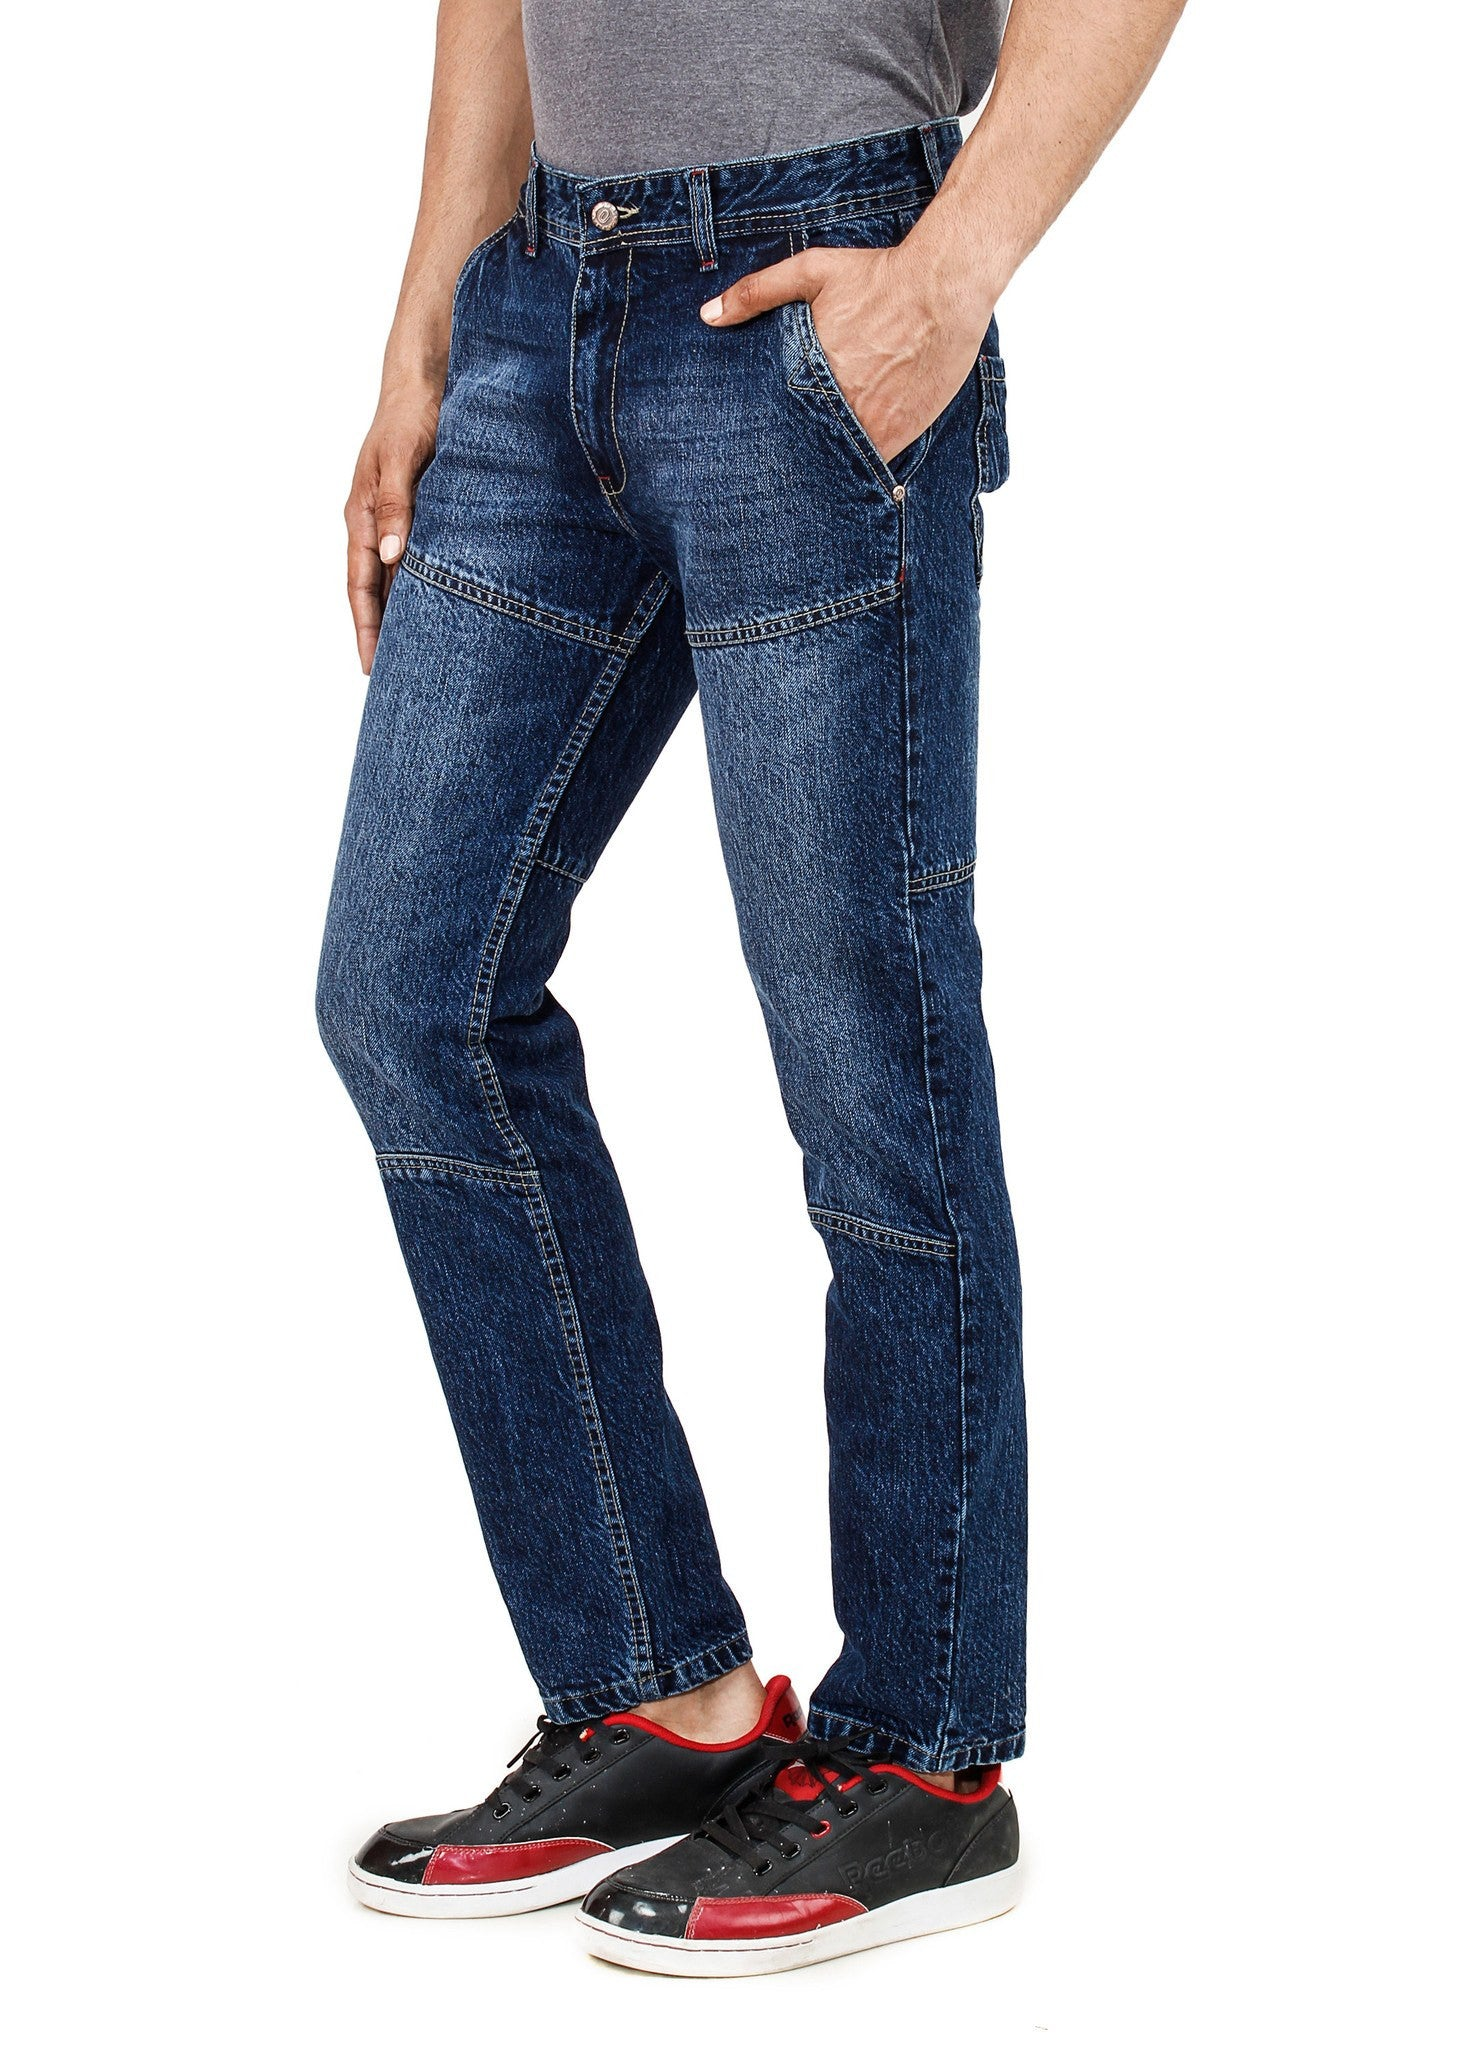 Graded Blacklue Jeans side view